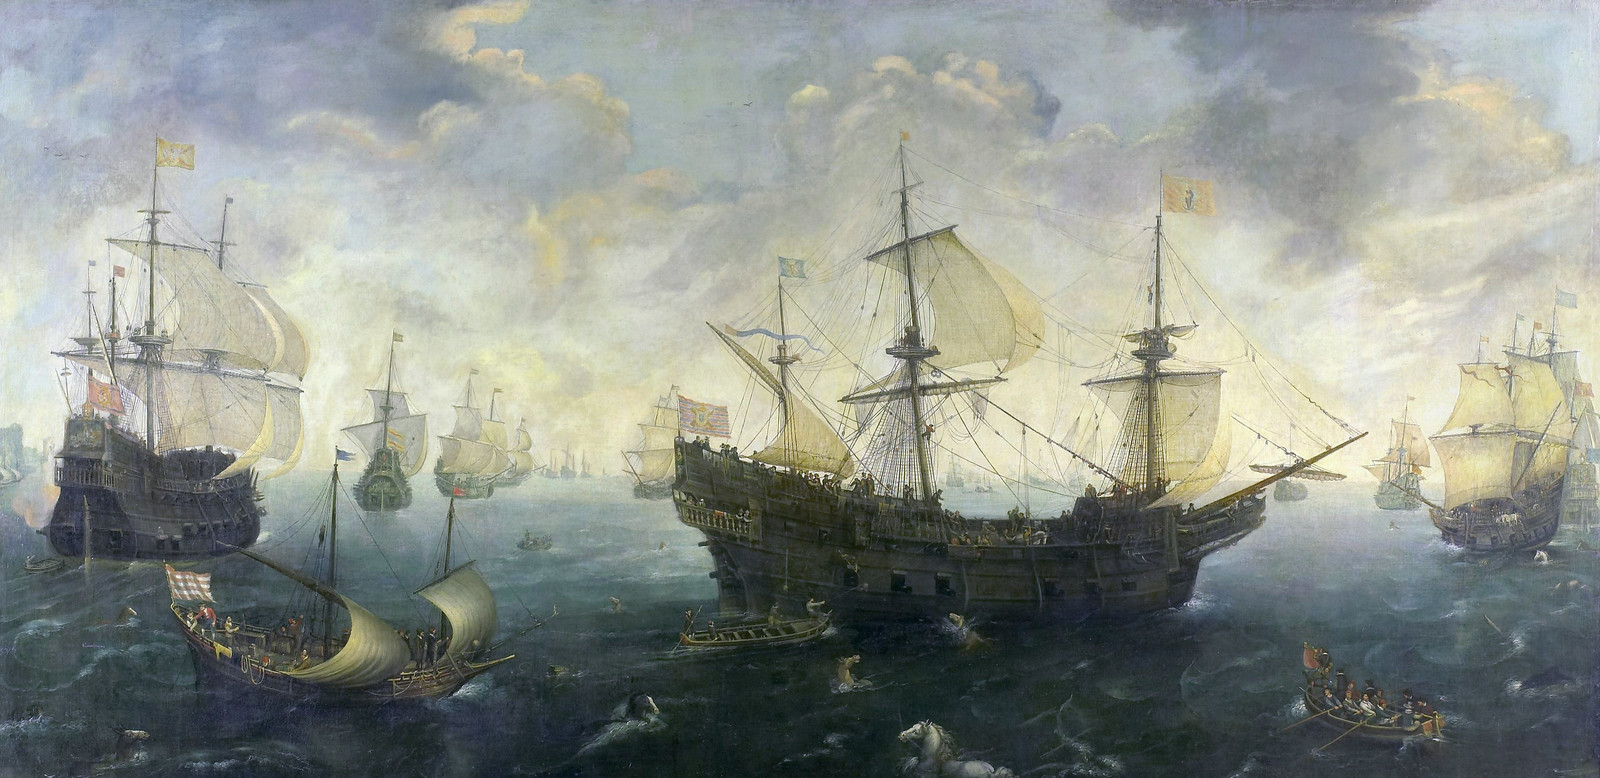 The Spanish Armada off the English coast, by Cornelis Claesz van Wieringen